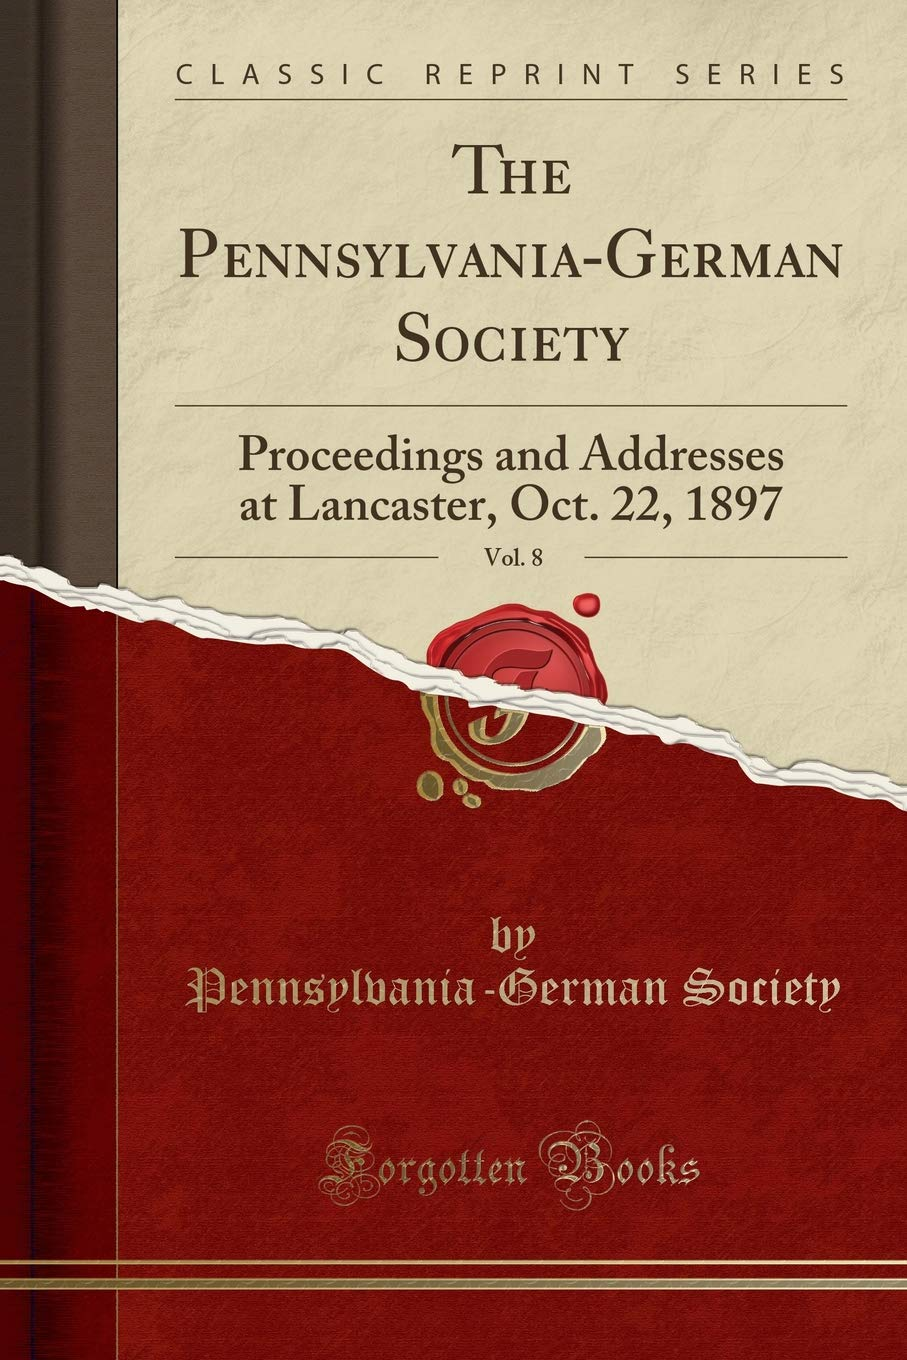 Download The Pennsylvania-German Society, Vol. 8: Proceedings and Addresses at Lancaster, Oct. 22, 1897 (Classic Reprint) PDF